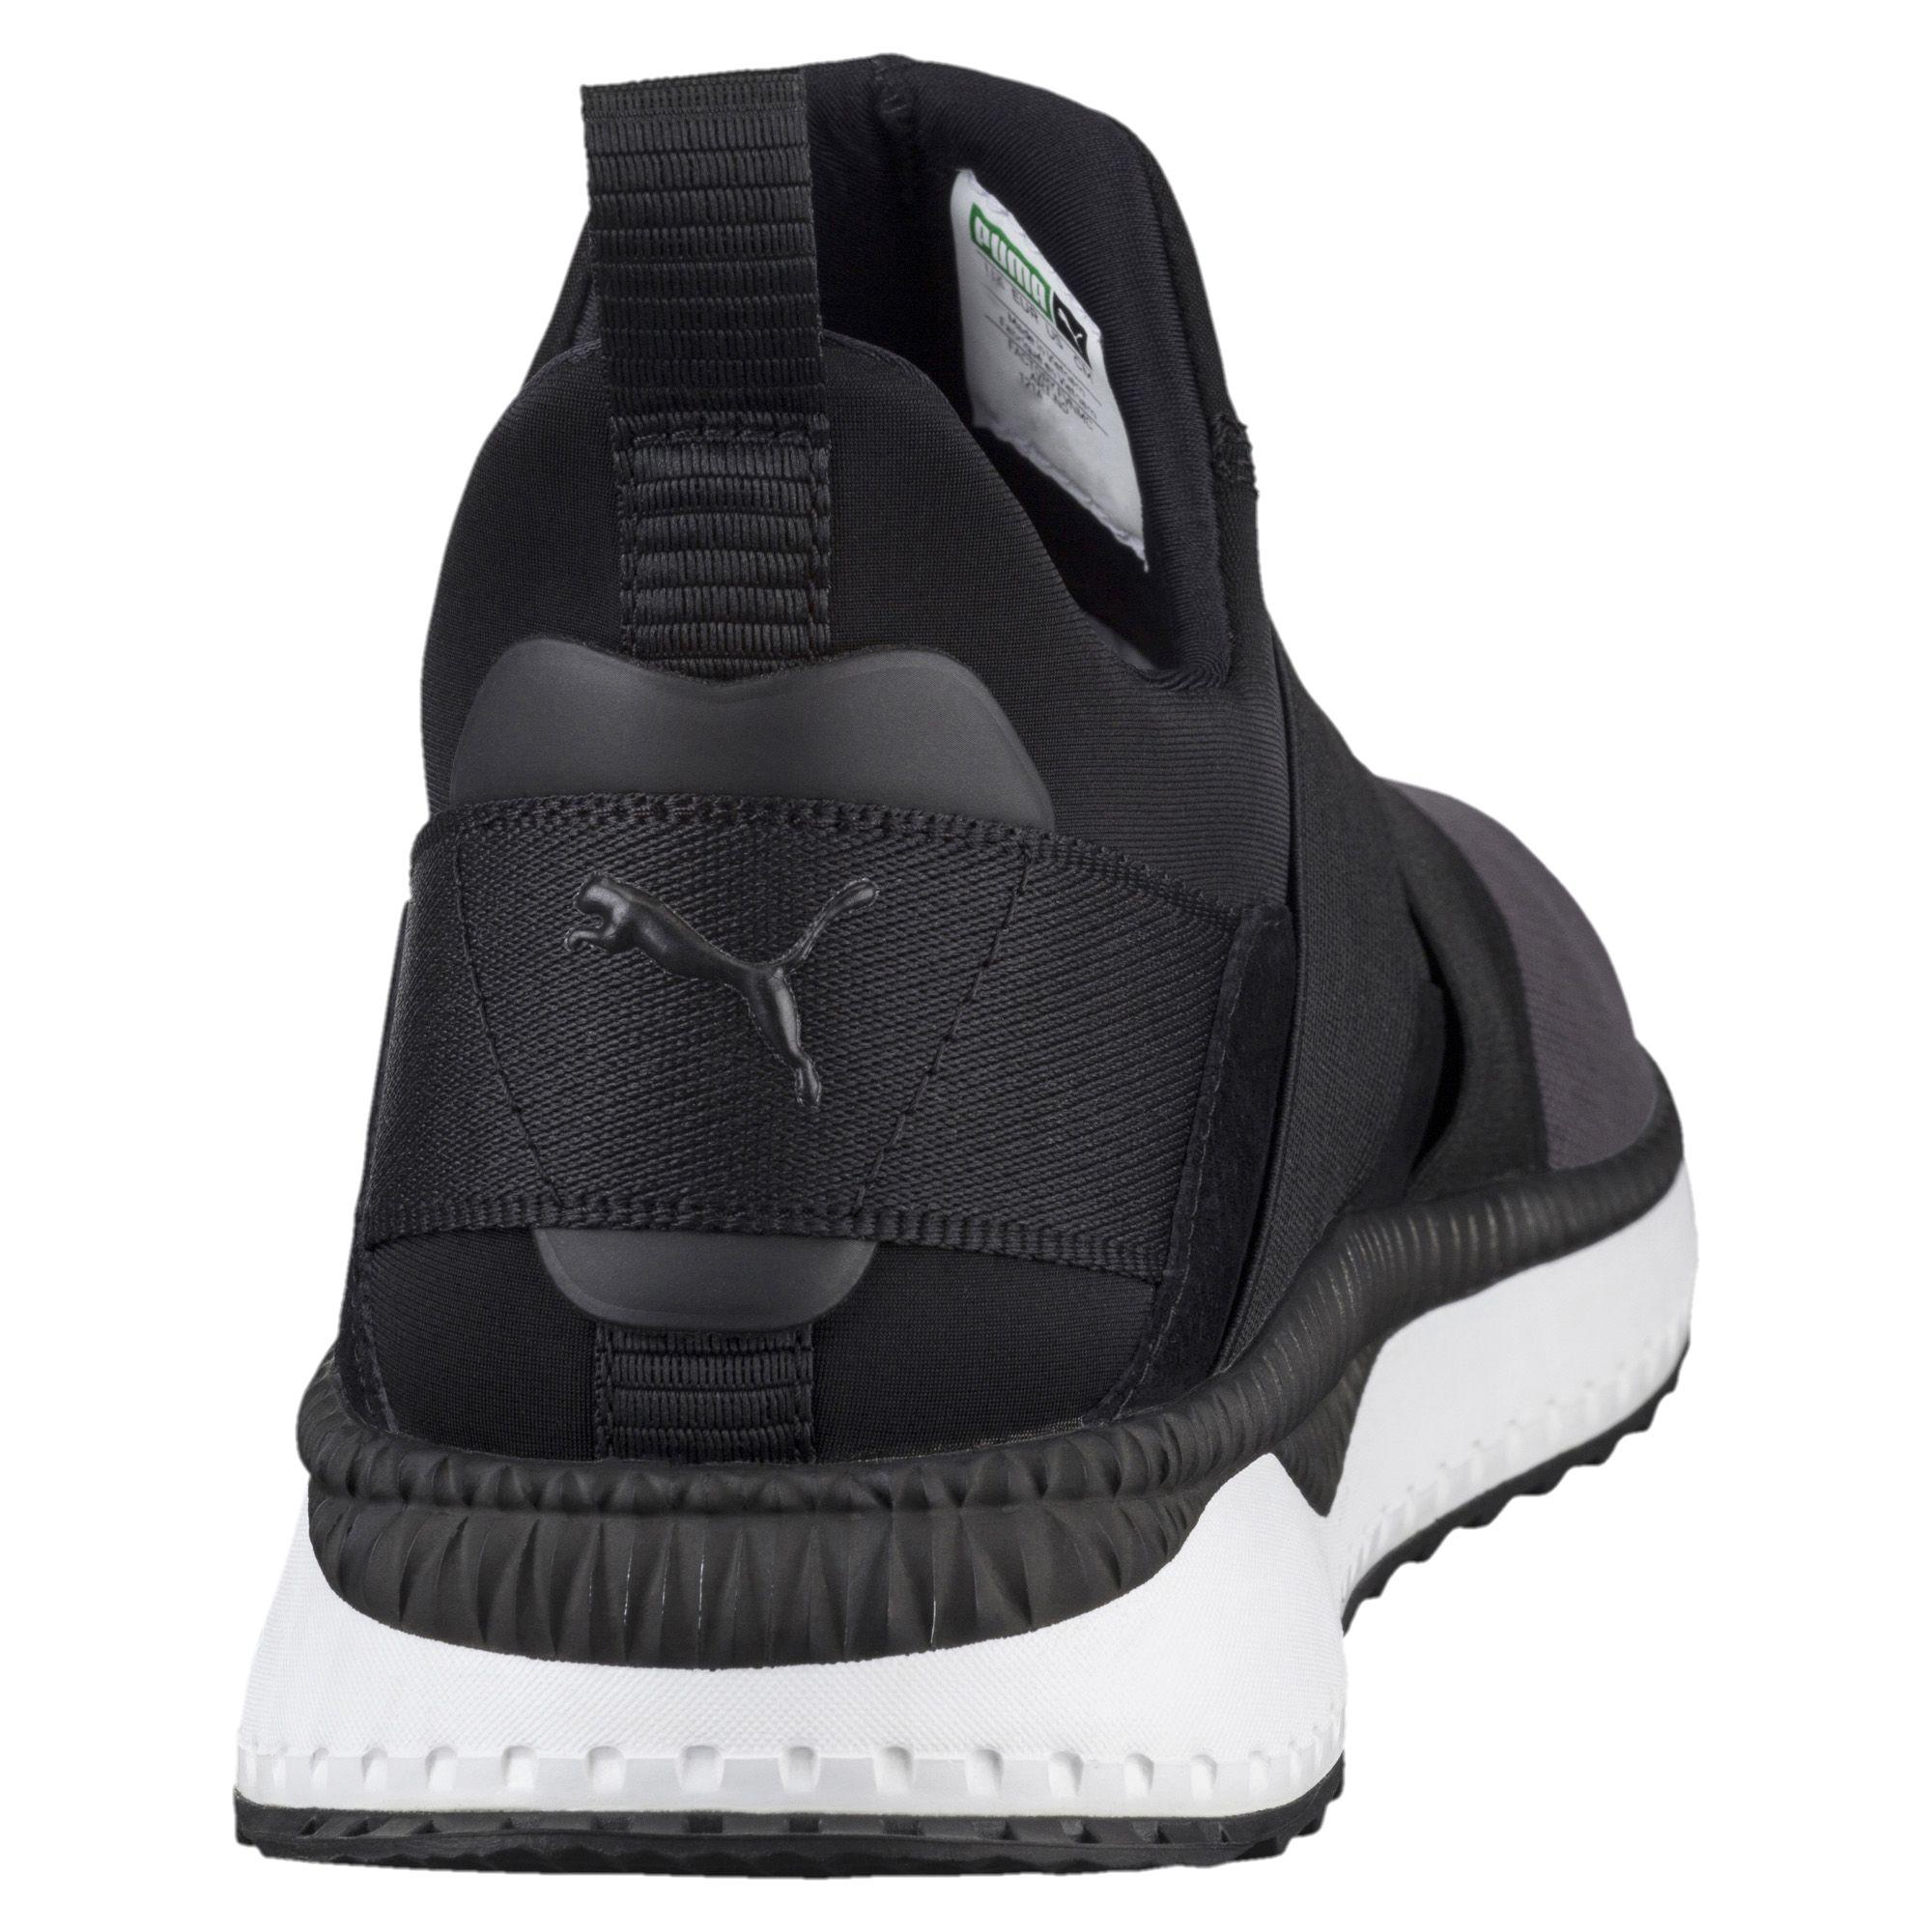 08a665d0c308 Lyst - PUMA Tsugi Zephyr Sneakers for Men